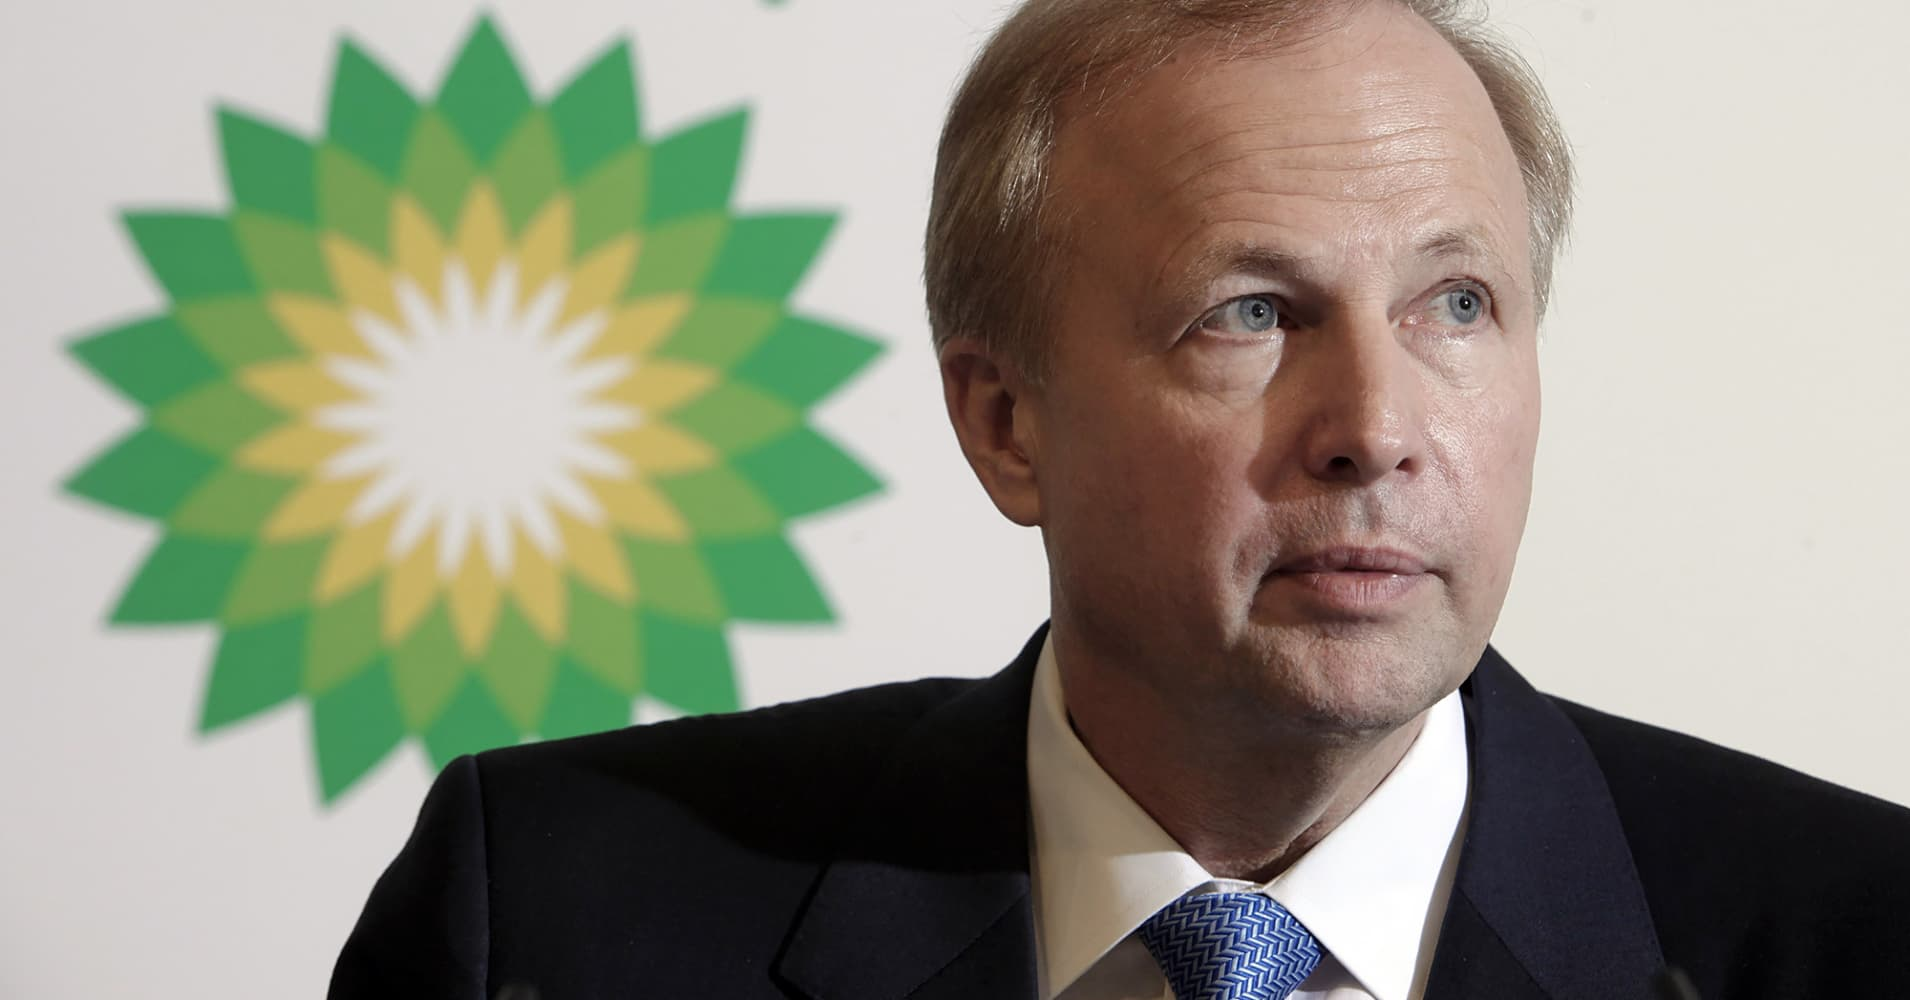 BP has invested more money in Egypt than anywhere else in the last two years, CEO says